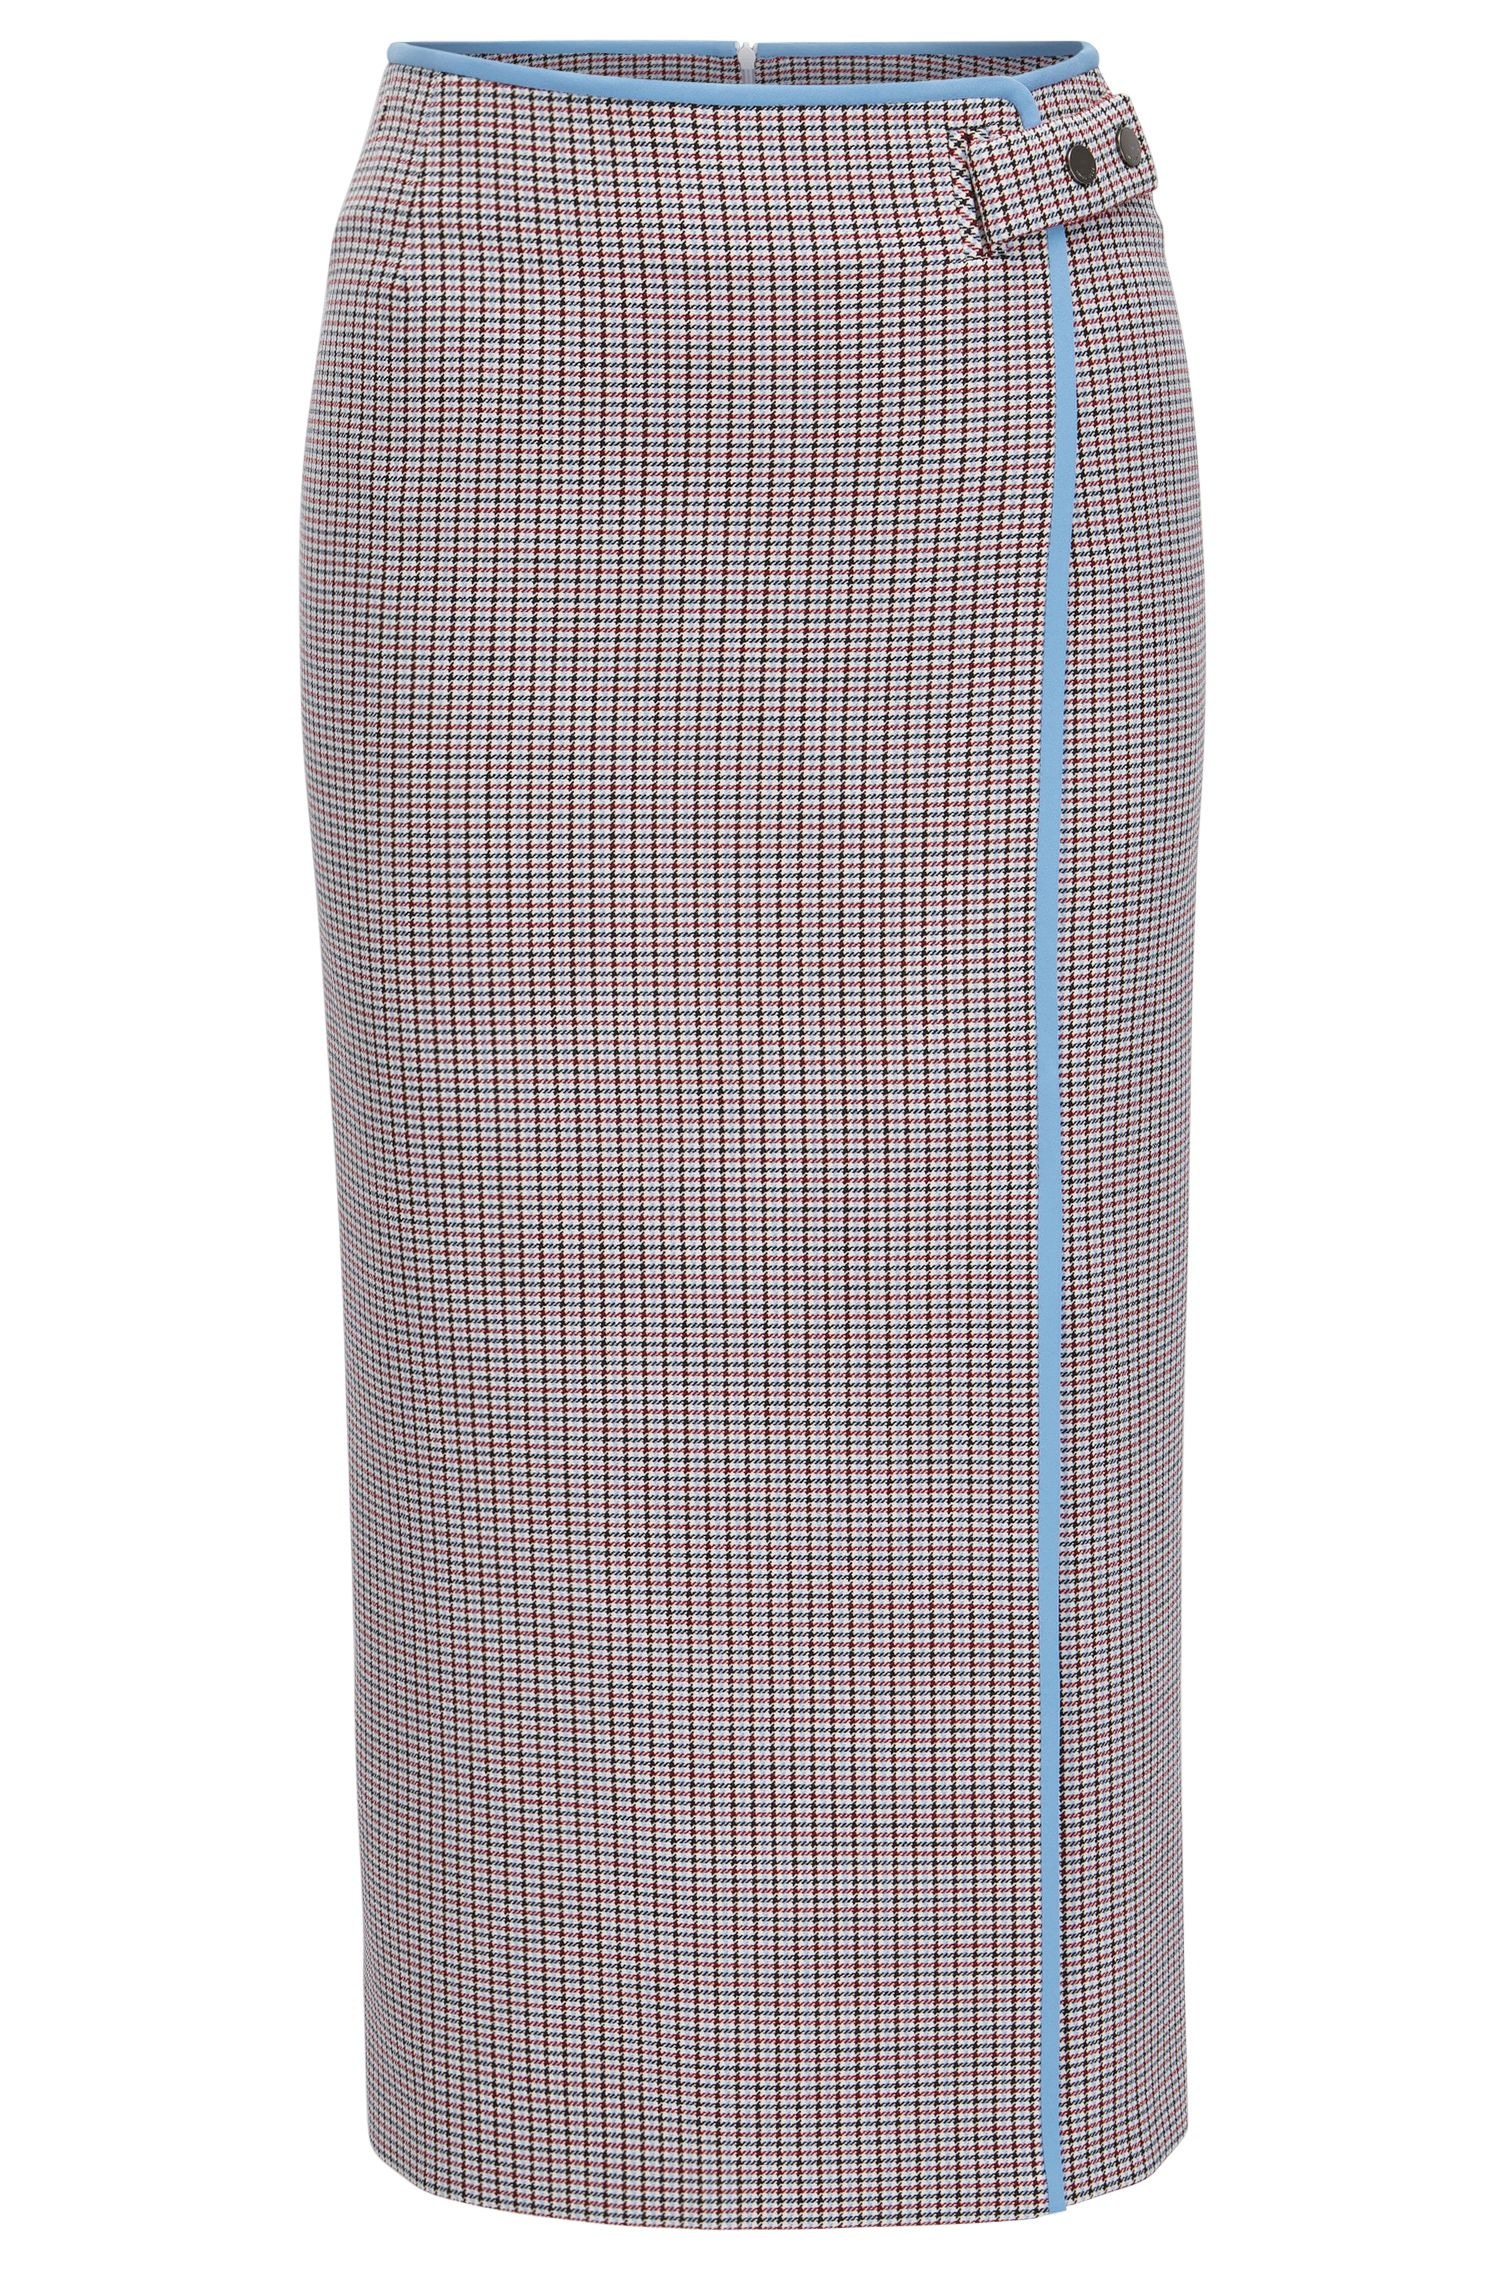 Pencil skirt in double-faced fabric